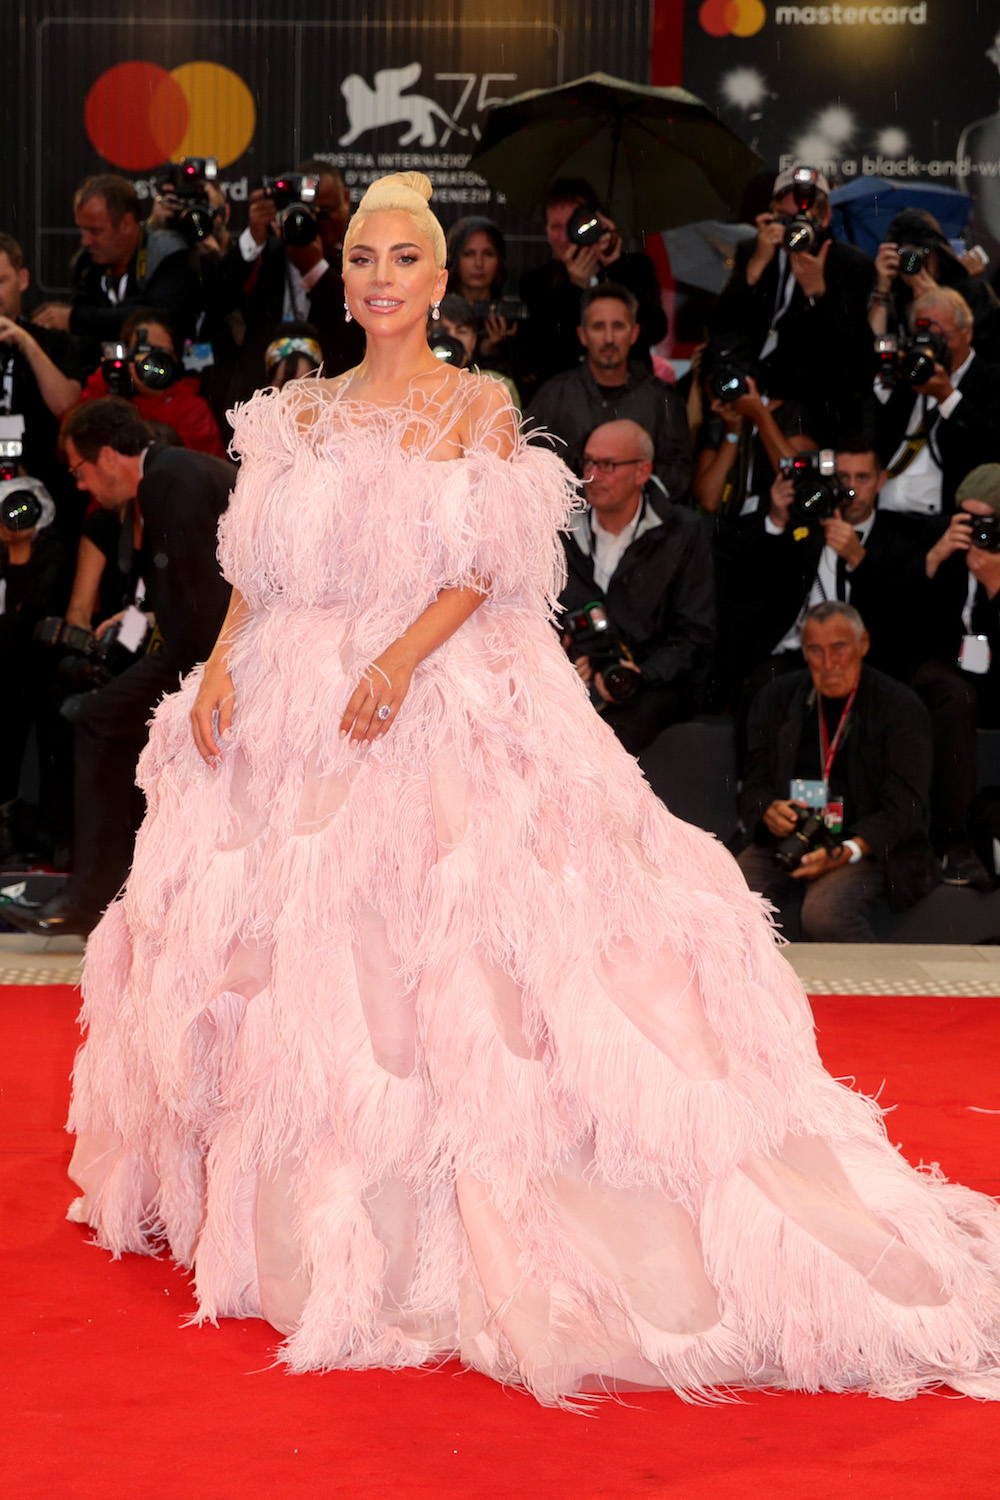 Lady gaga in Valentino Couture